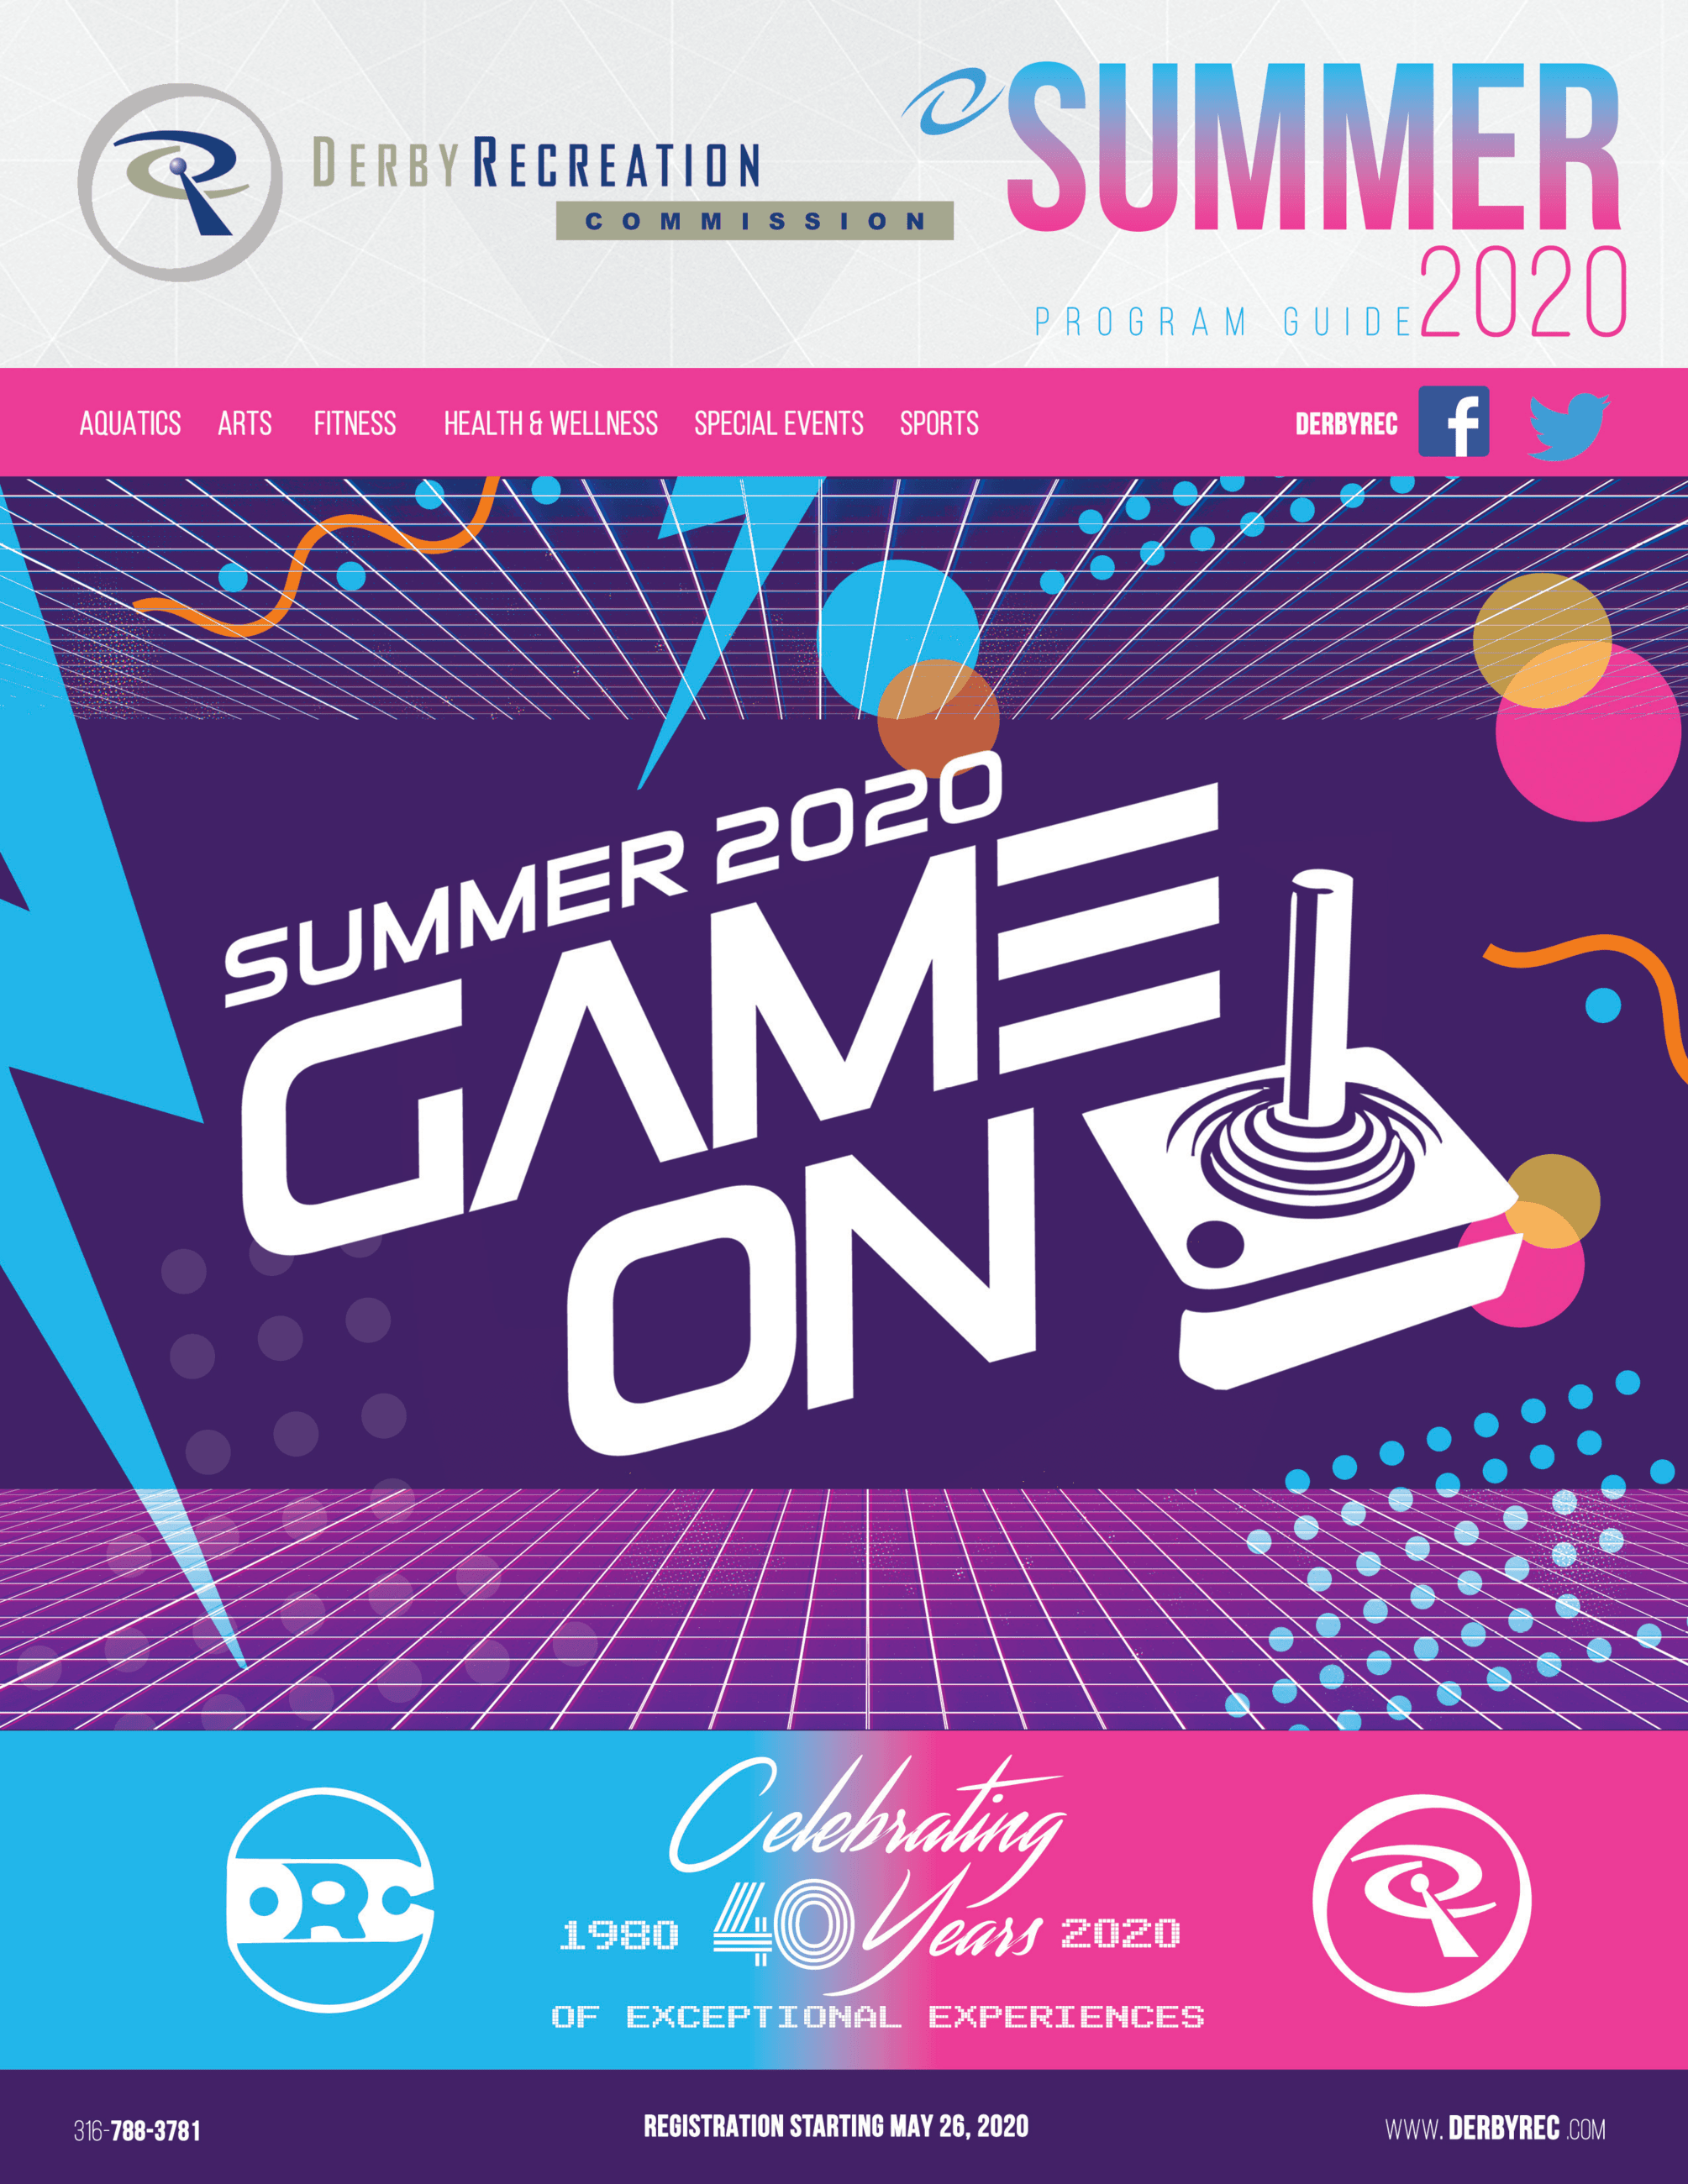 Summer2020 - Program Guide